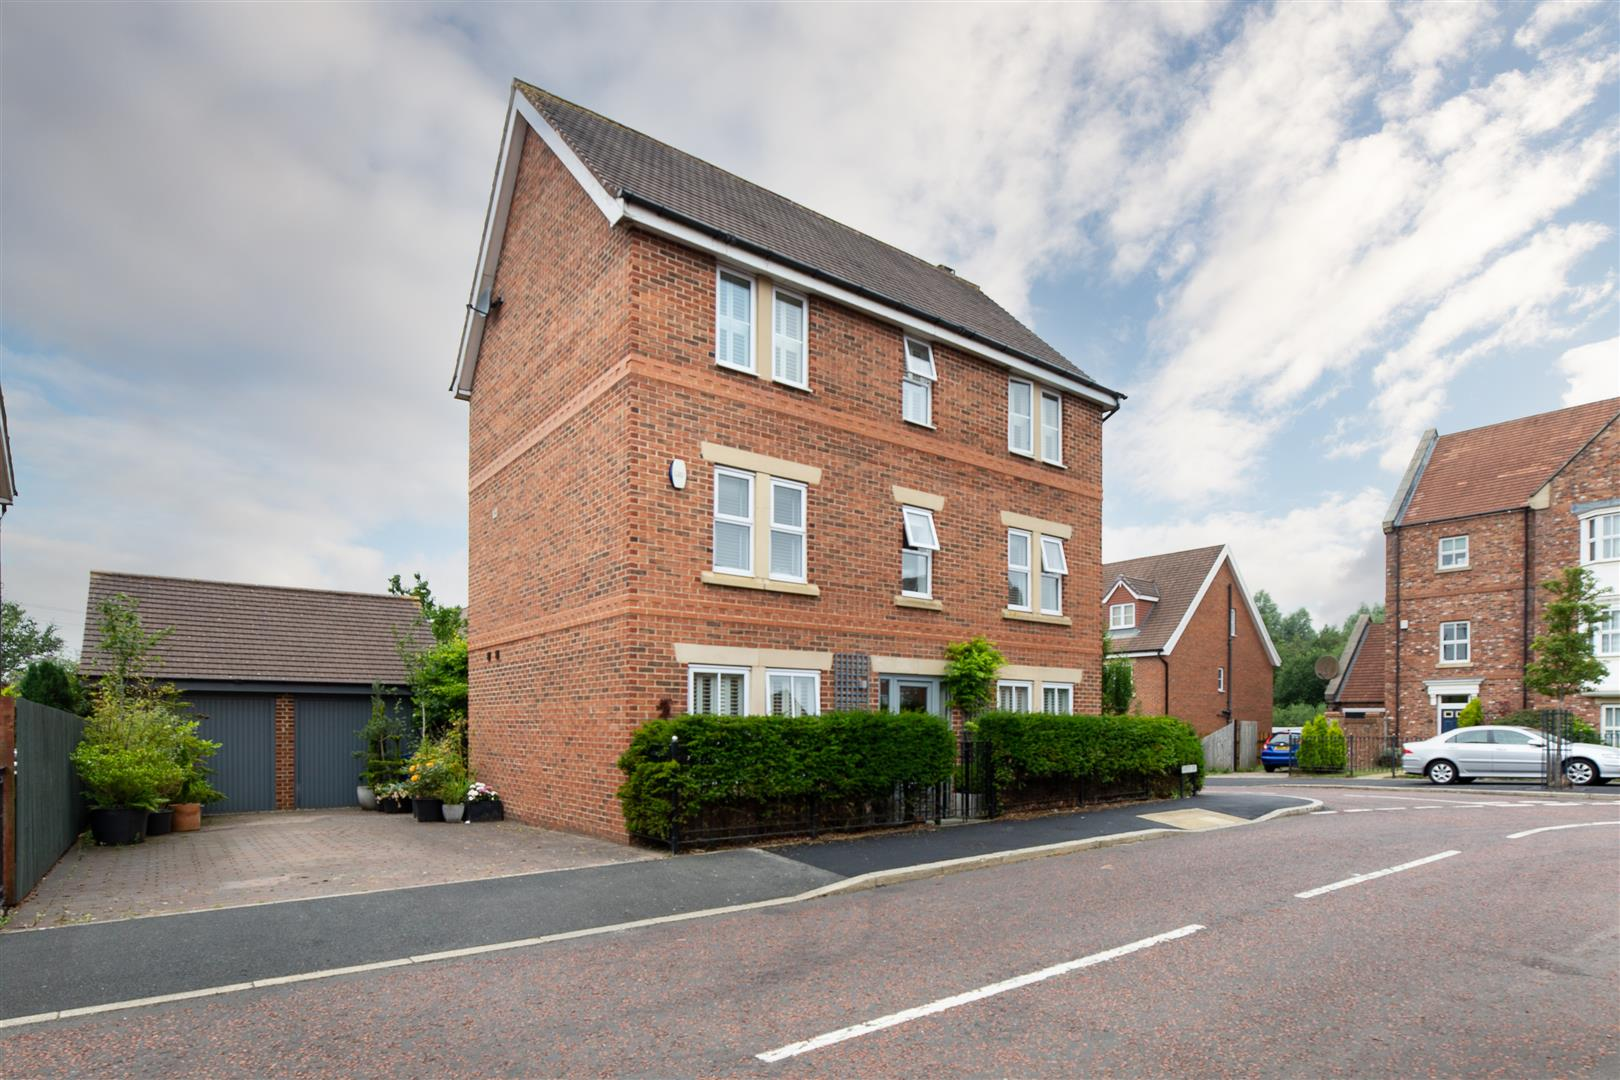 4 bed detached house for sale in Sharperton Drive, Great Park, NE3